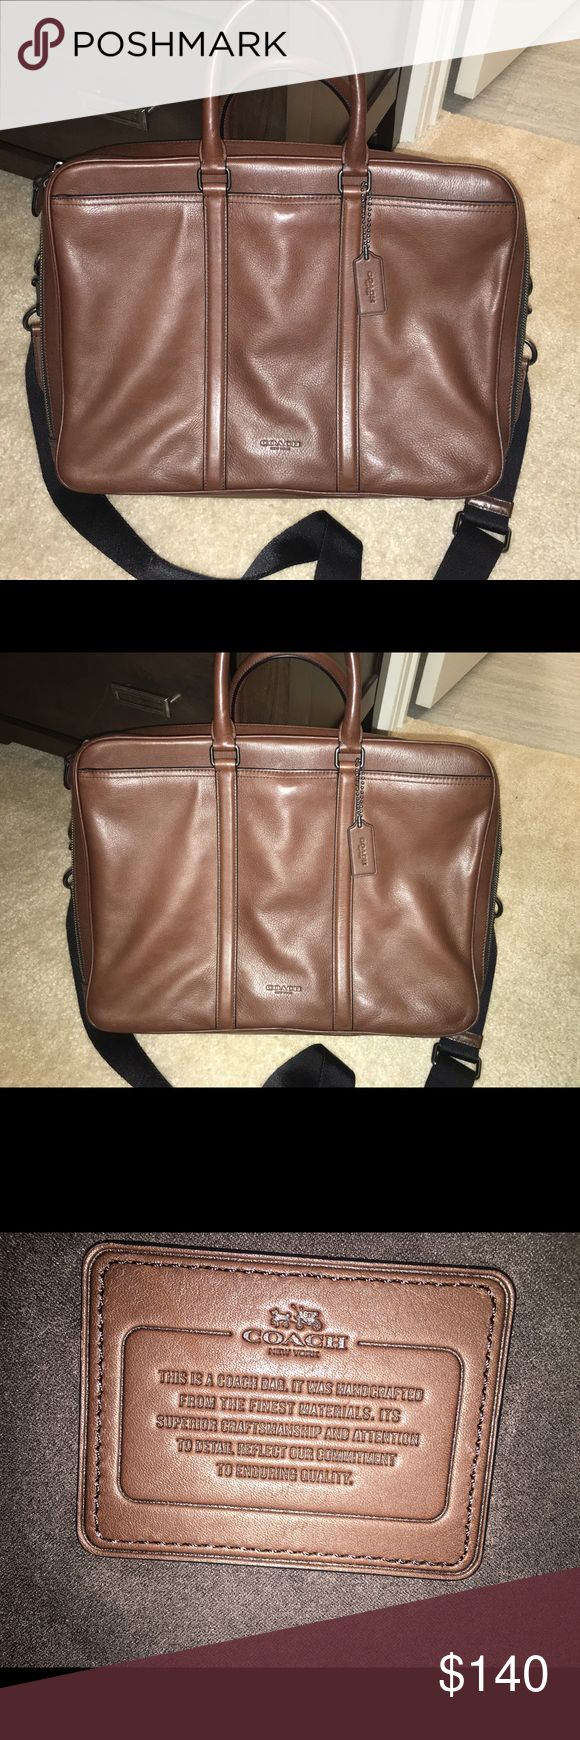 Authentic Coach Briefcase Like New! Authentic Coach Briefcase/Messenger bag. Was gifted, but I don't bring my work home with me. Originally priced at $395 in store. Awesome condition, I've used maybe a handful of times. Smoke free home. Ready to ship. Same day or next business day shipping. *be respectful with offers as Poshmark takes 20%* TIA Coach Bags Laptop Bags